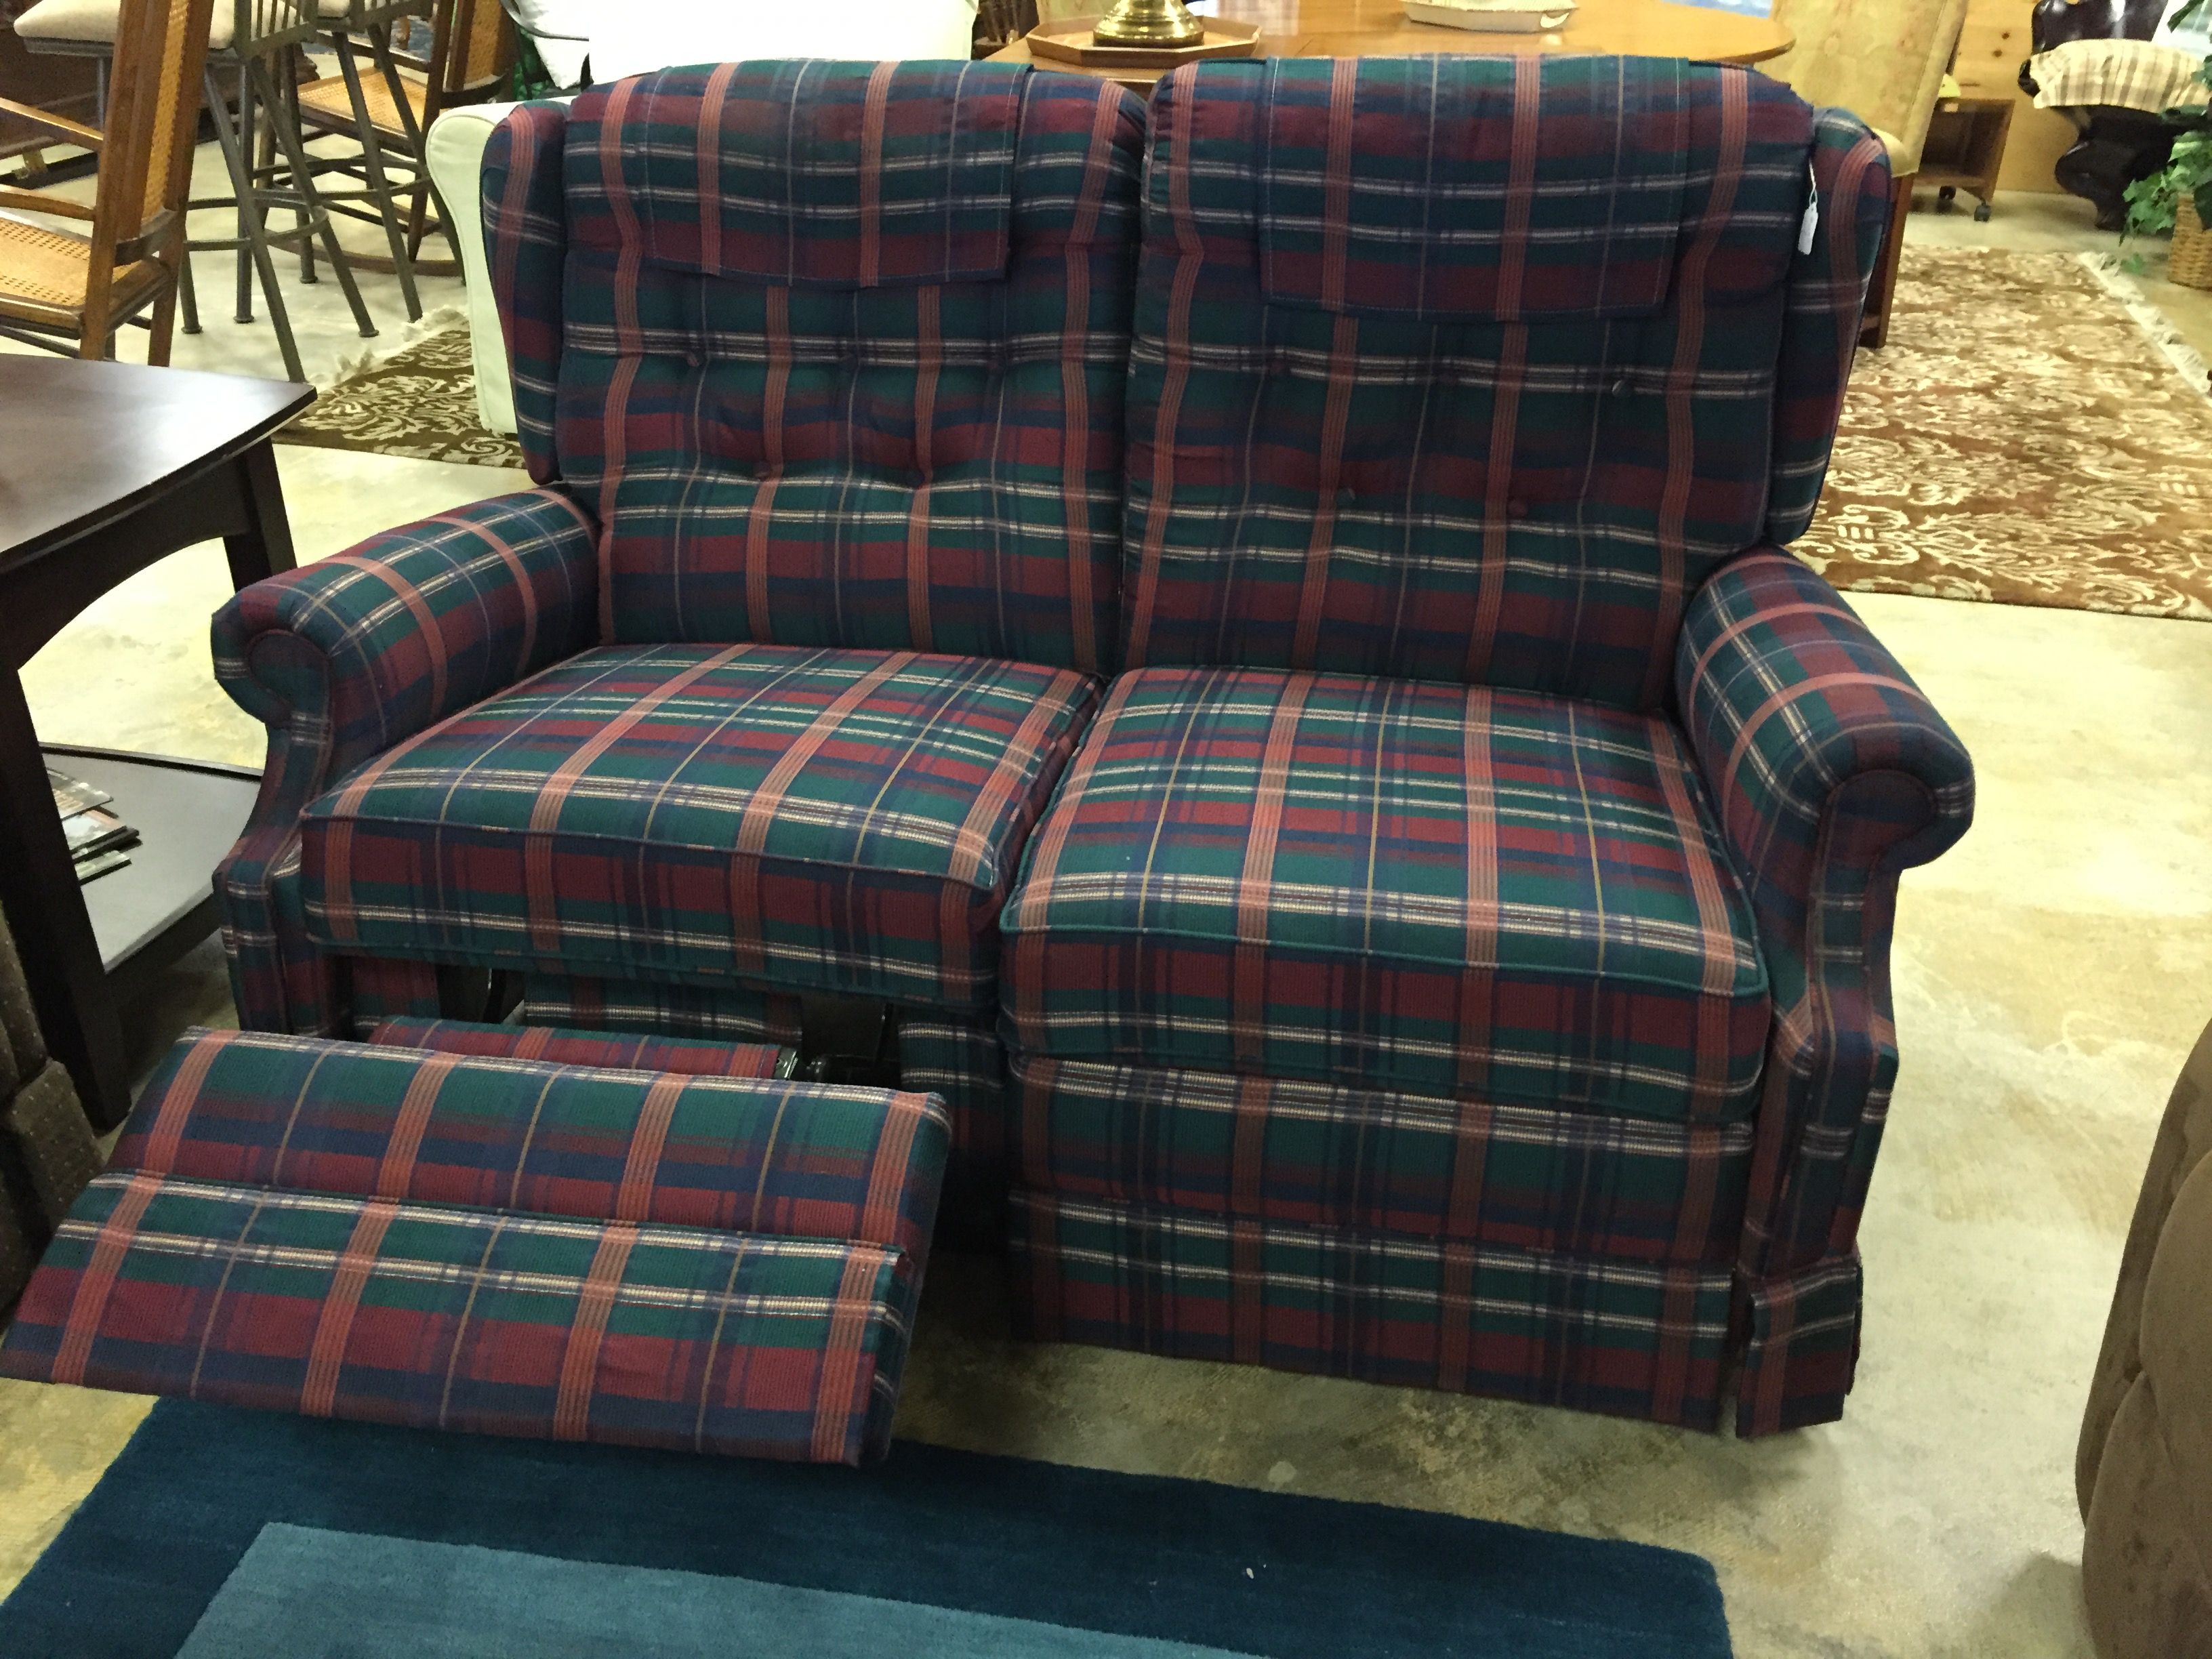 Plaid Lazy Boy loveseat $195 forsale mk consignment loveseat